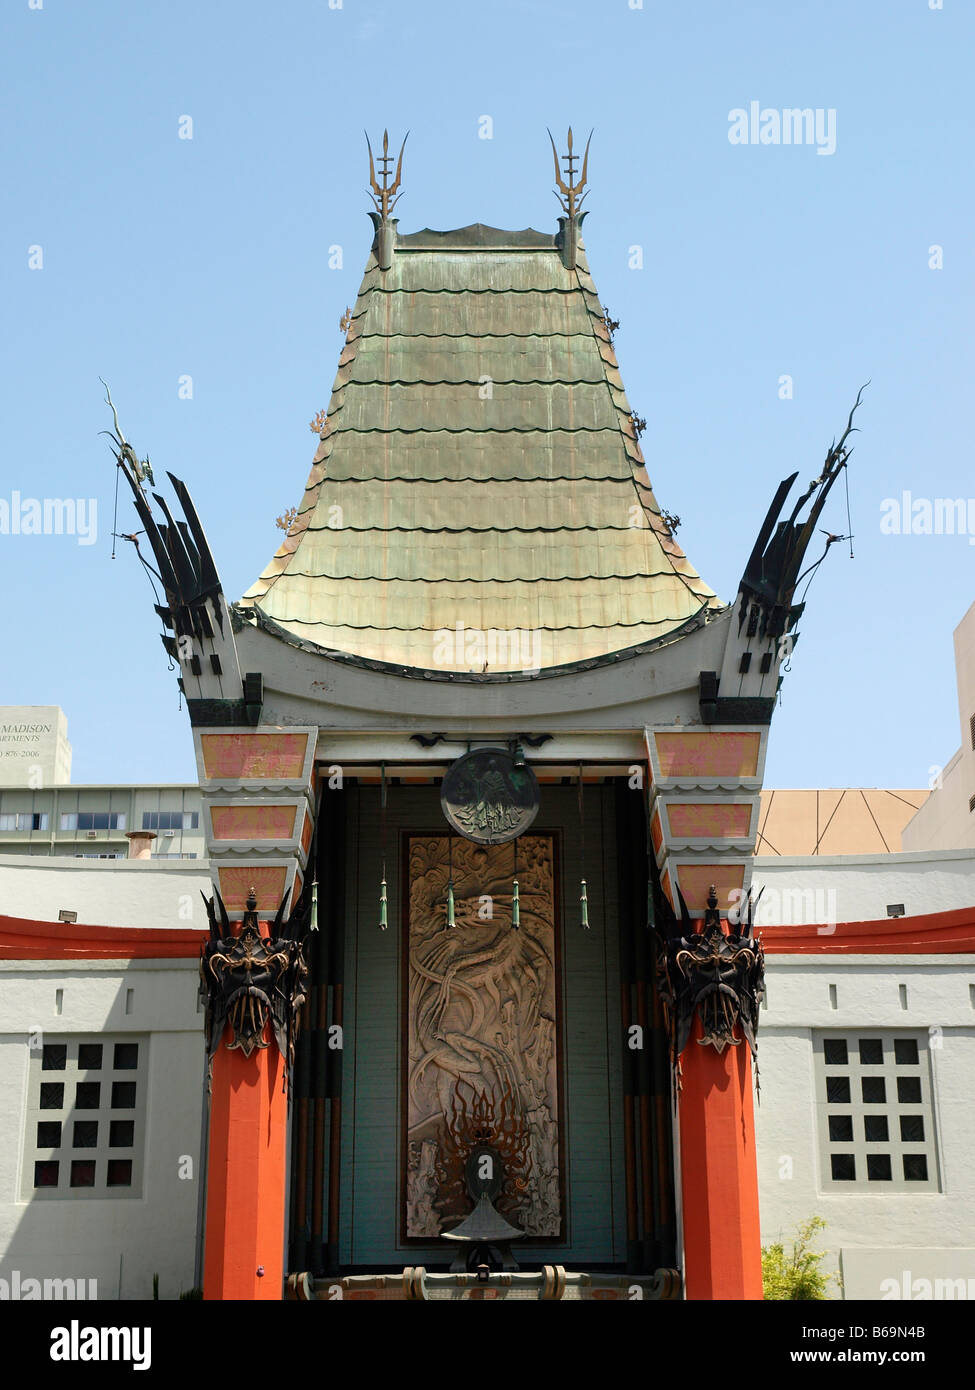 Detail of Grauman's Chinese Theater, Los Angeles, California - Stock Image